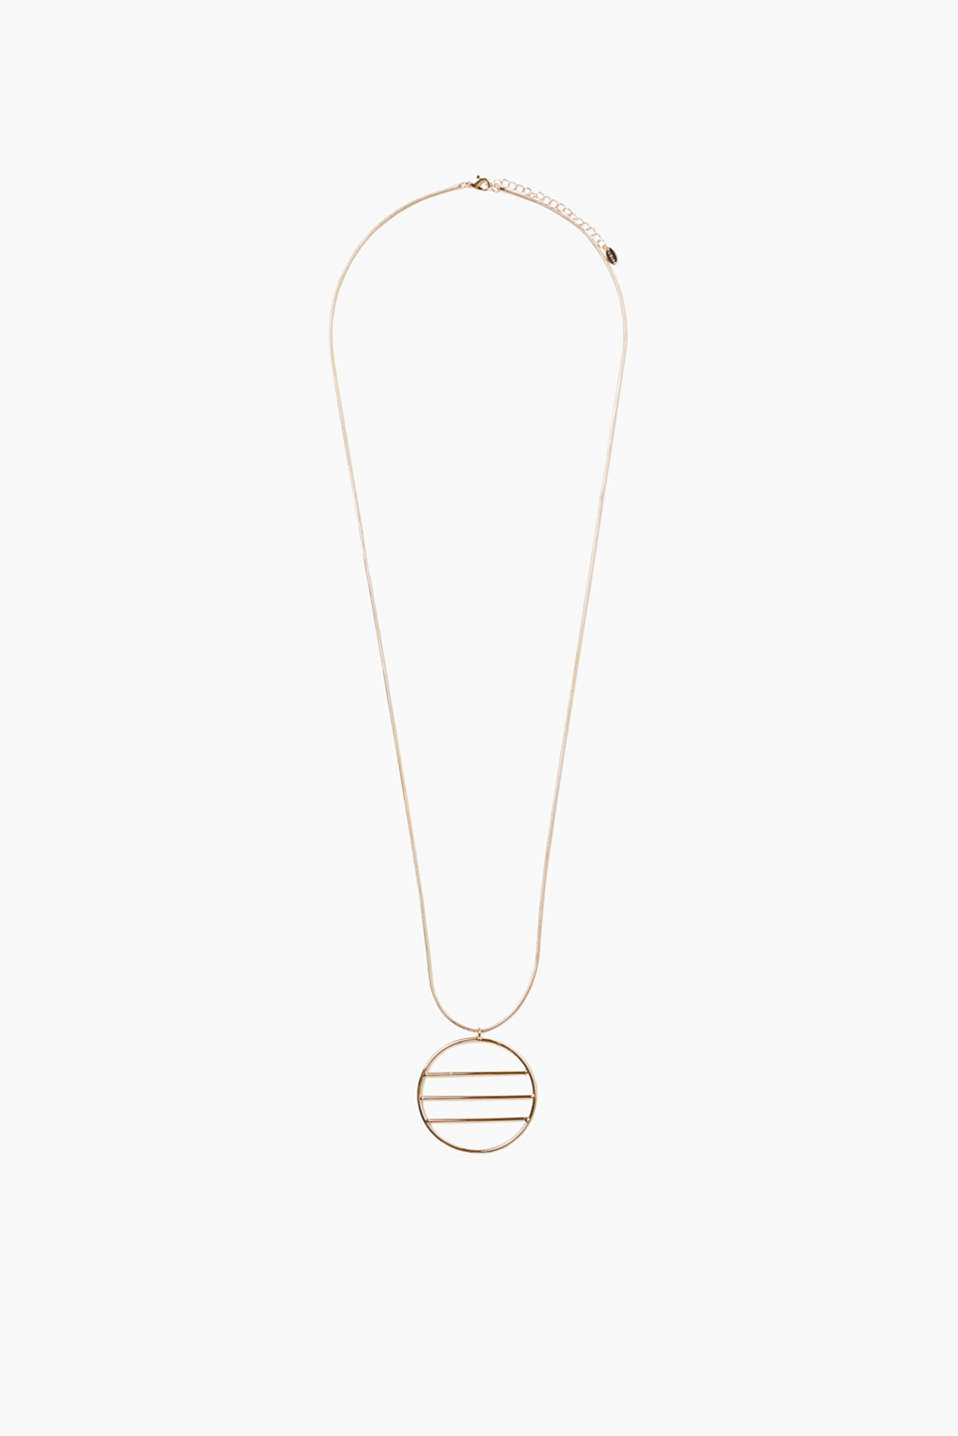 Long necklace with a graphic pendant